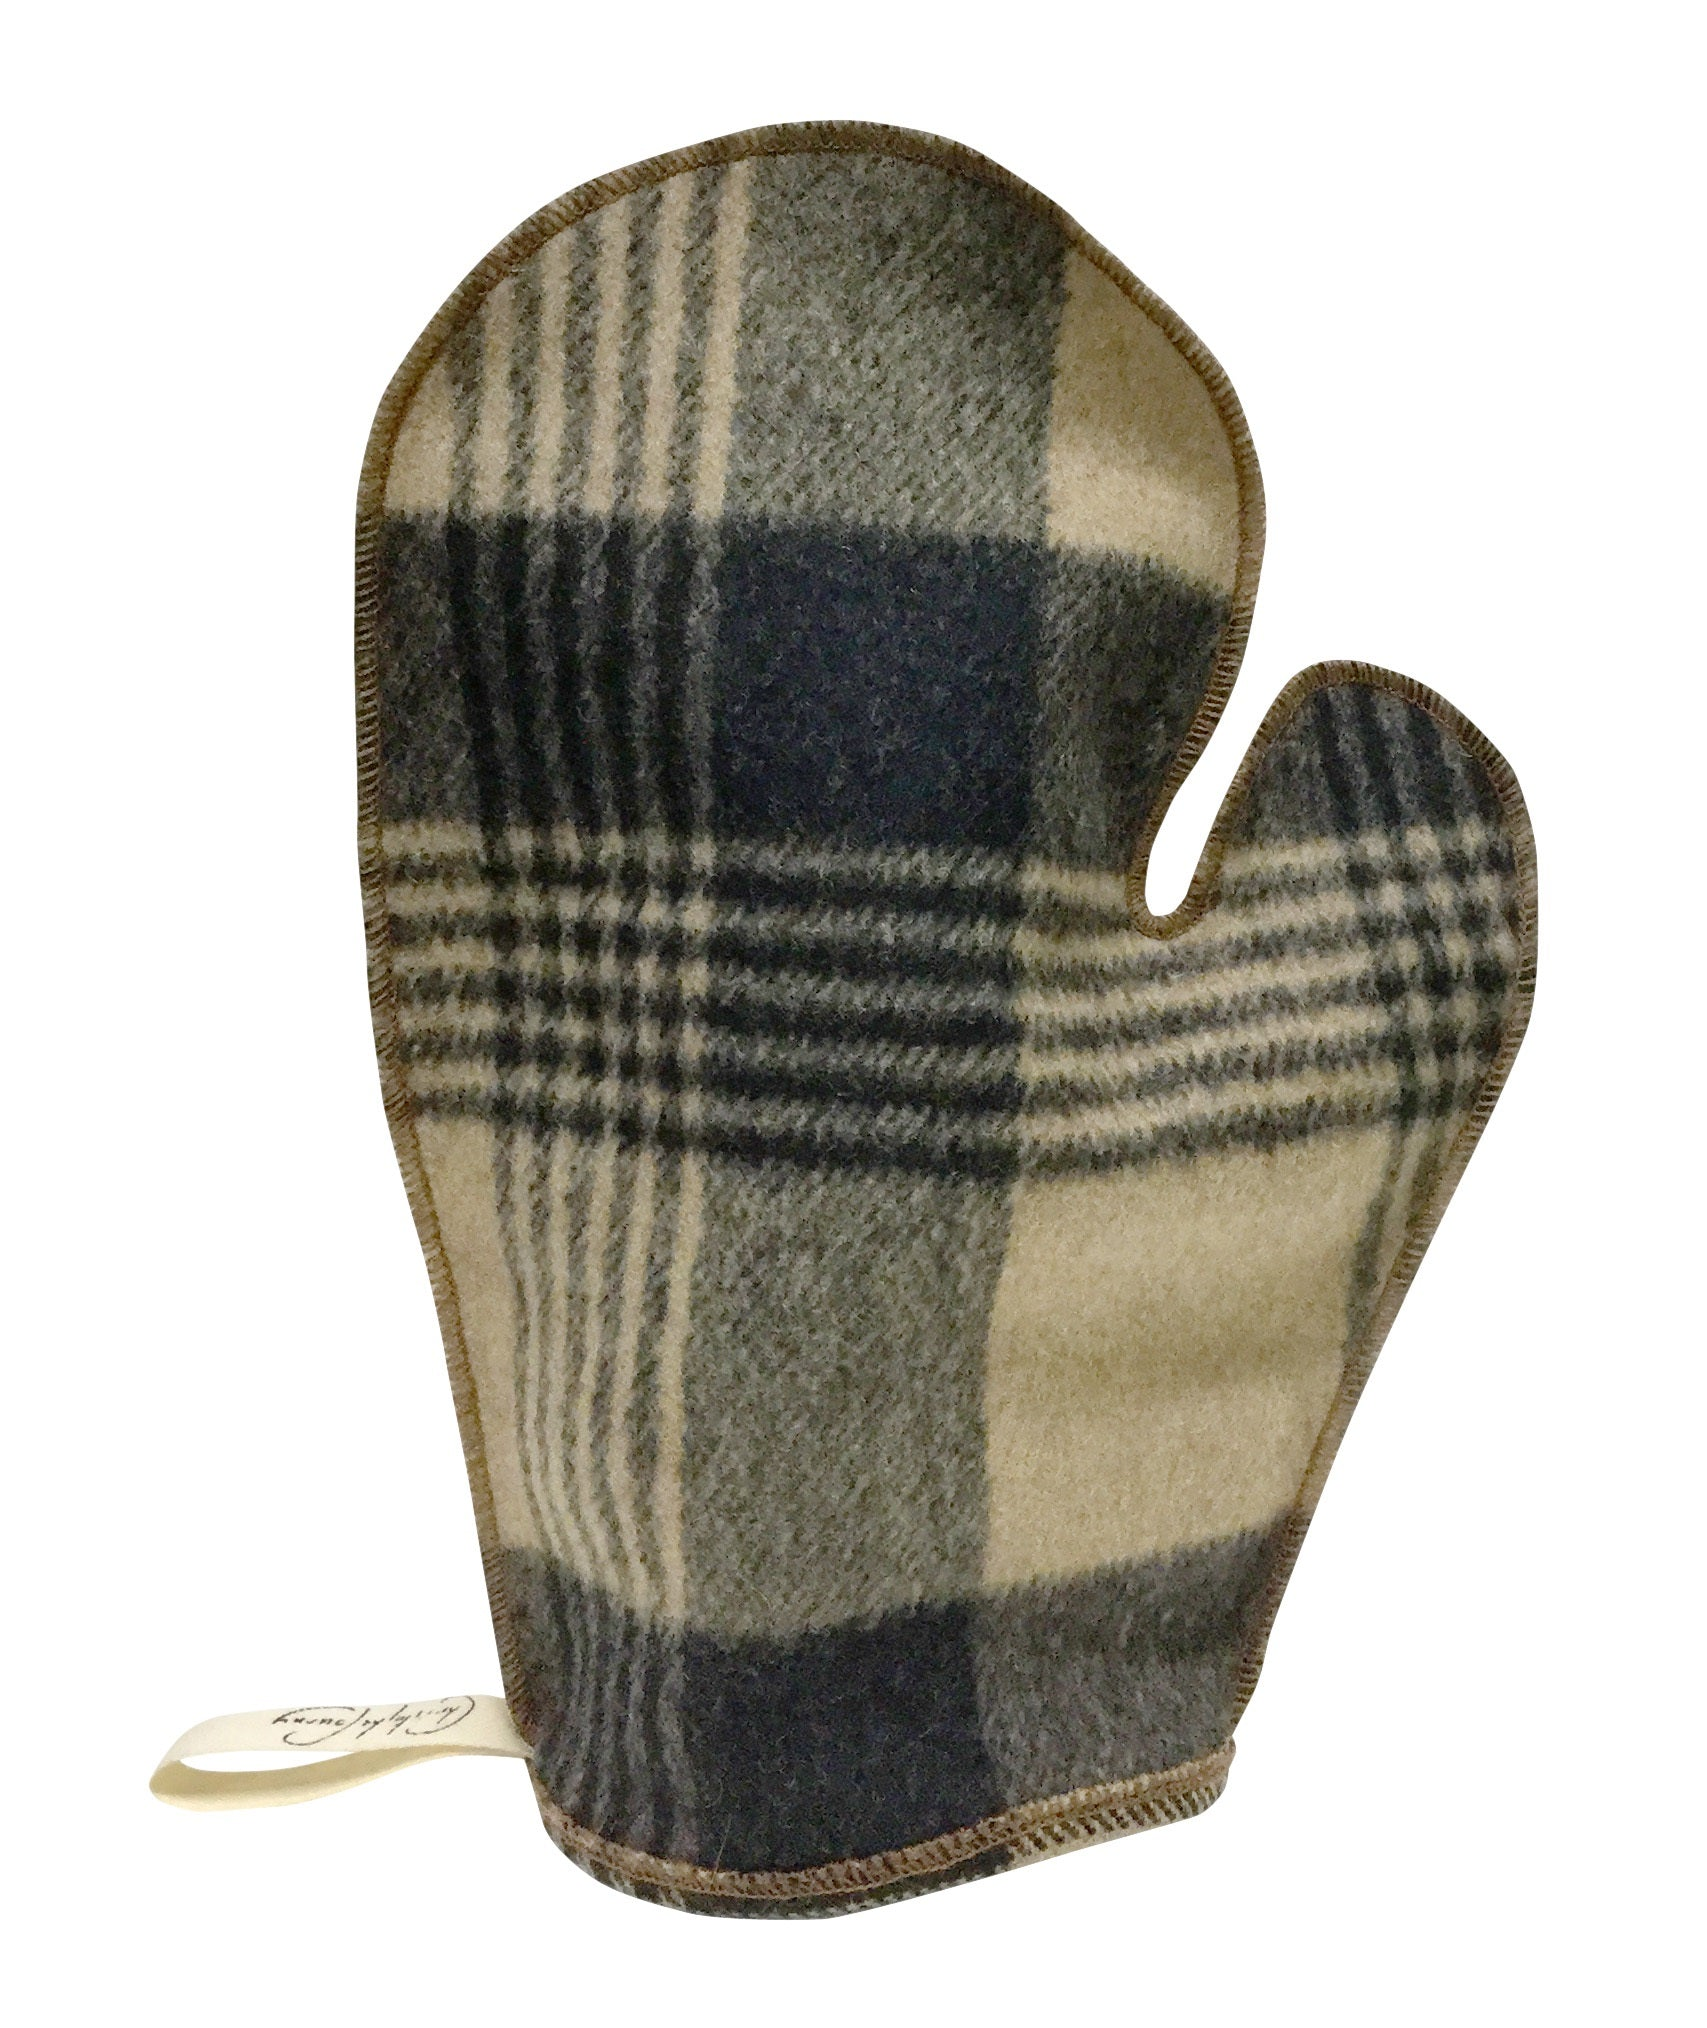 PLAID POLISHING MITT